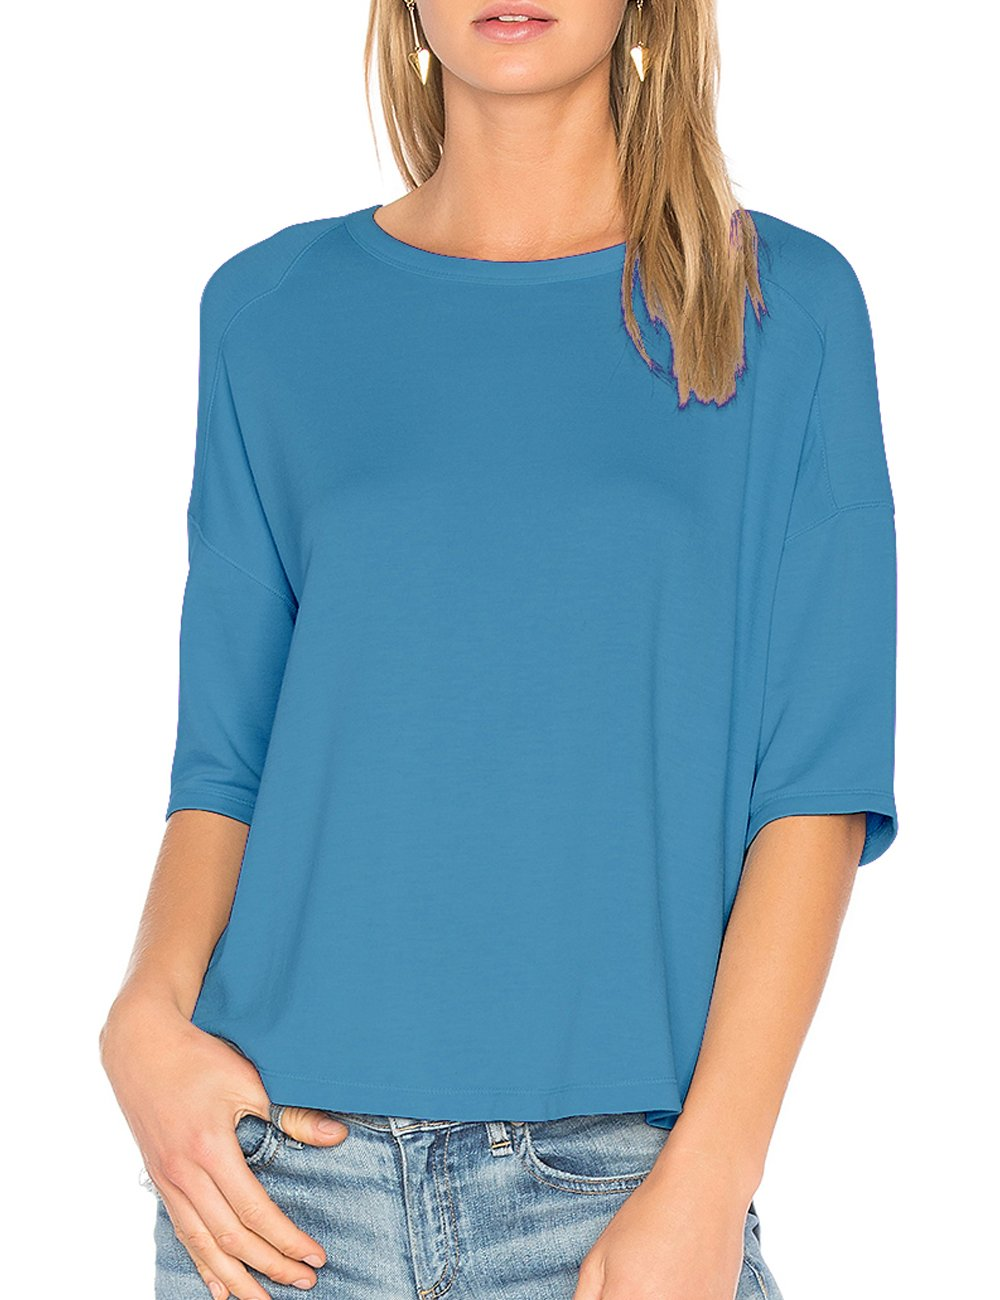 ALLY-MAGIC Womens Cotton T-Shirt 3/4 Sleeves Casual Loose Top Blouse C4722 (XXL, Blue)